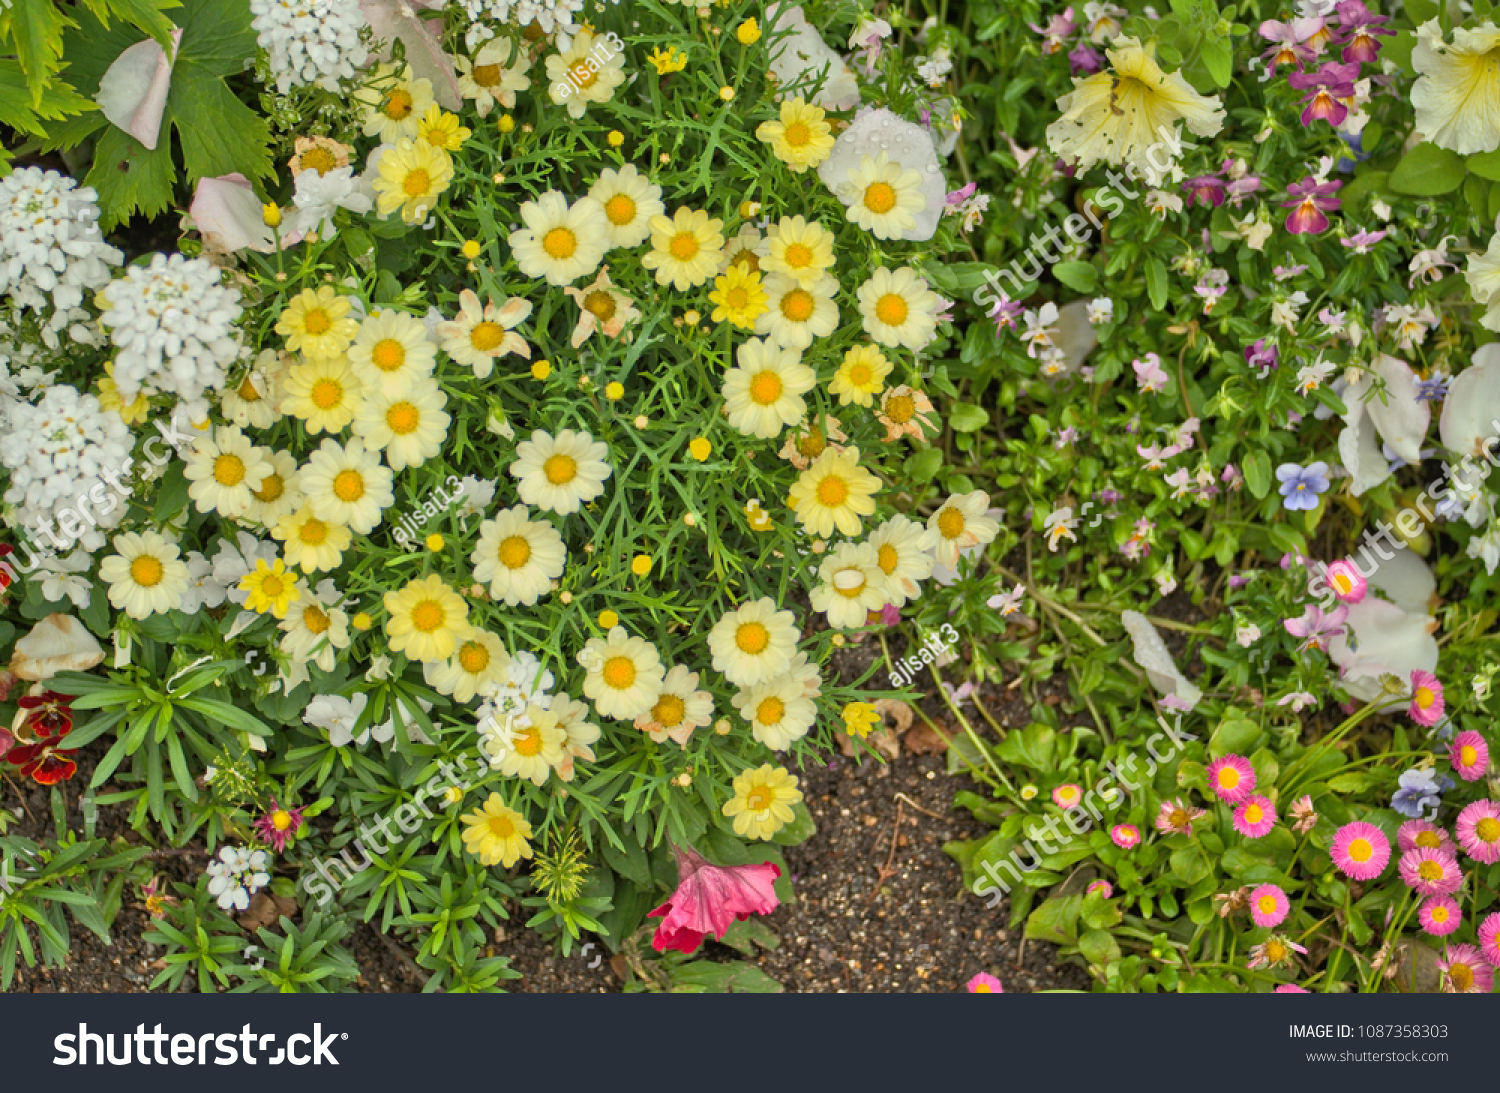 Pretty small yellow flower daisy like stock photo image royalty pretty small yellow flower daisy like as a groundcover and pink santa barbara daisy with a izmirmasajfo